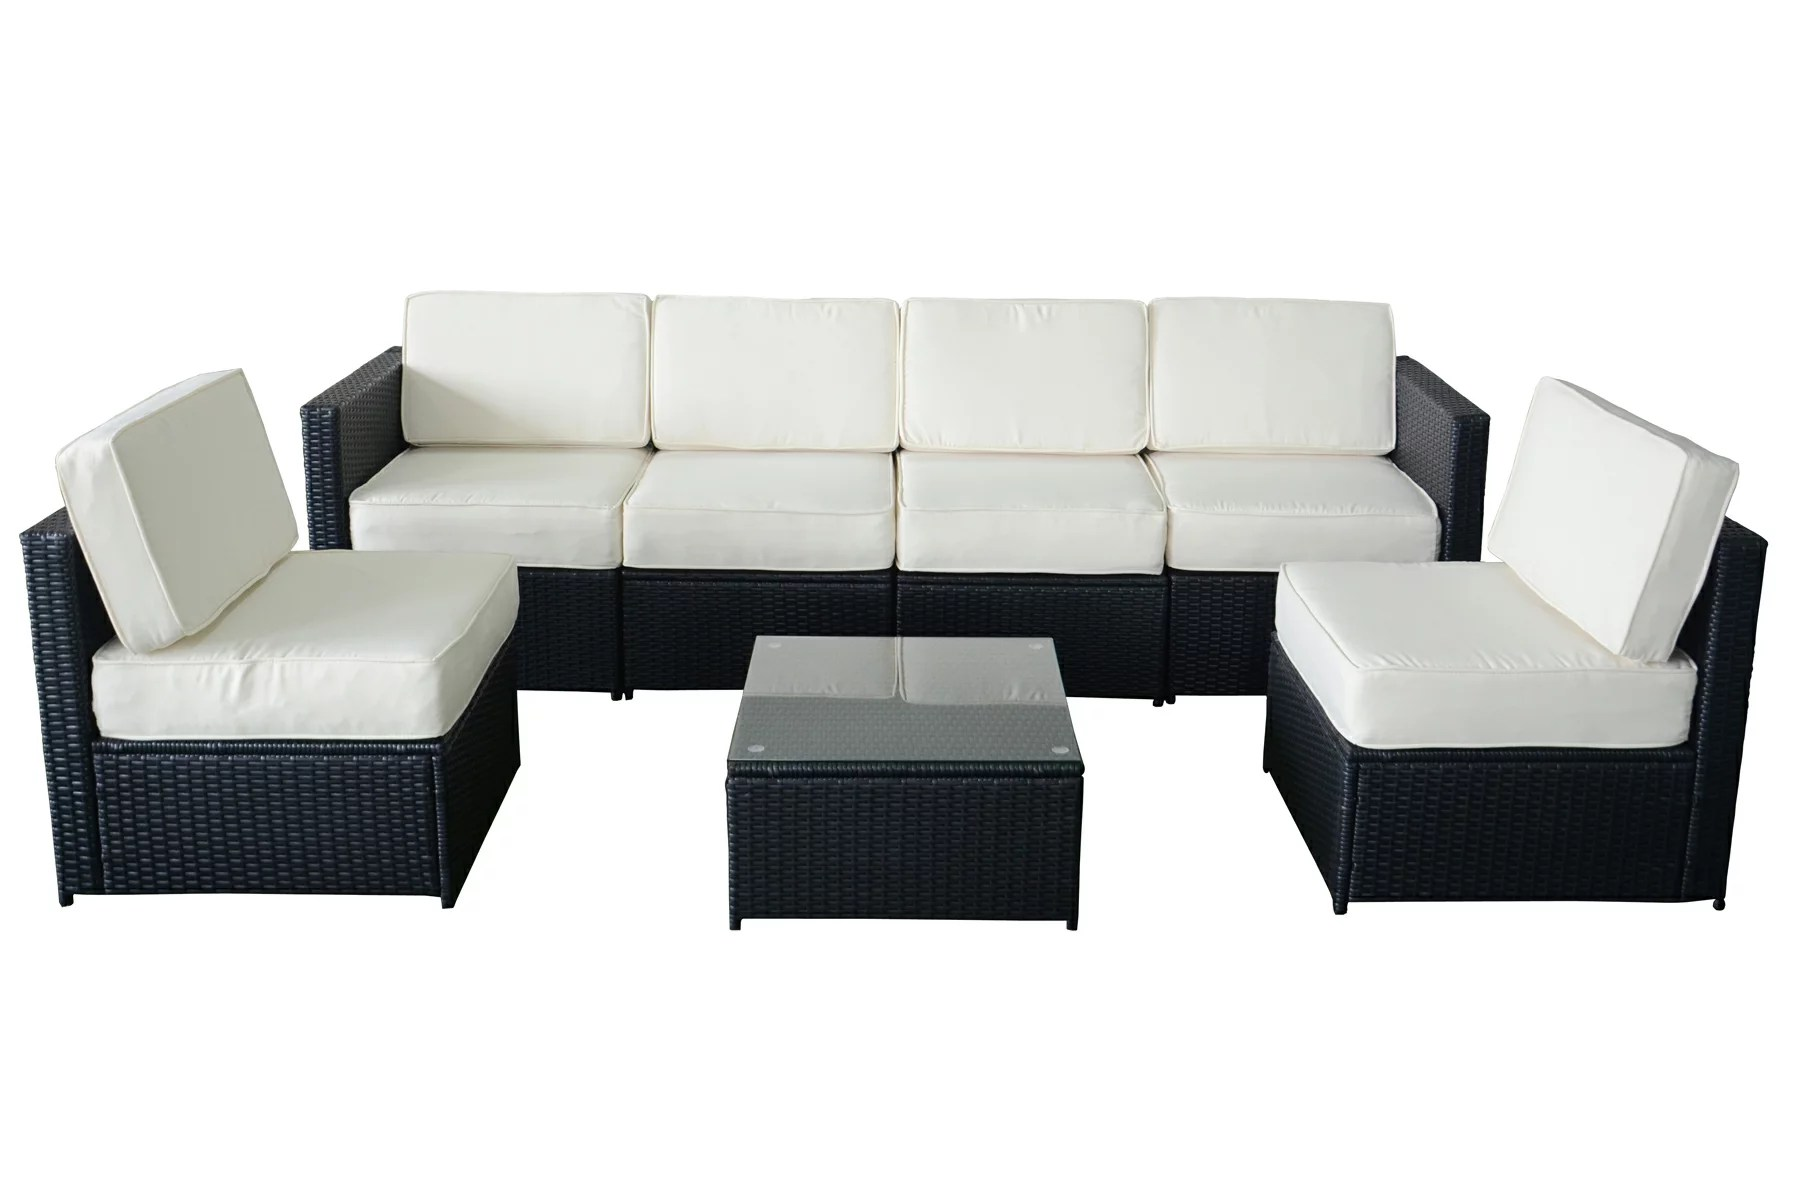 Outdoor Couch Mcombo 7pcs Black Wicker White Cushion Patio Sectional Outdoor Sofa Furniture Set 6085 S1007 A1